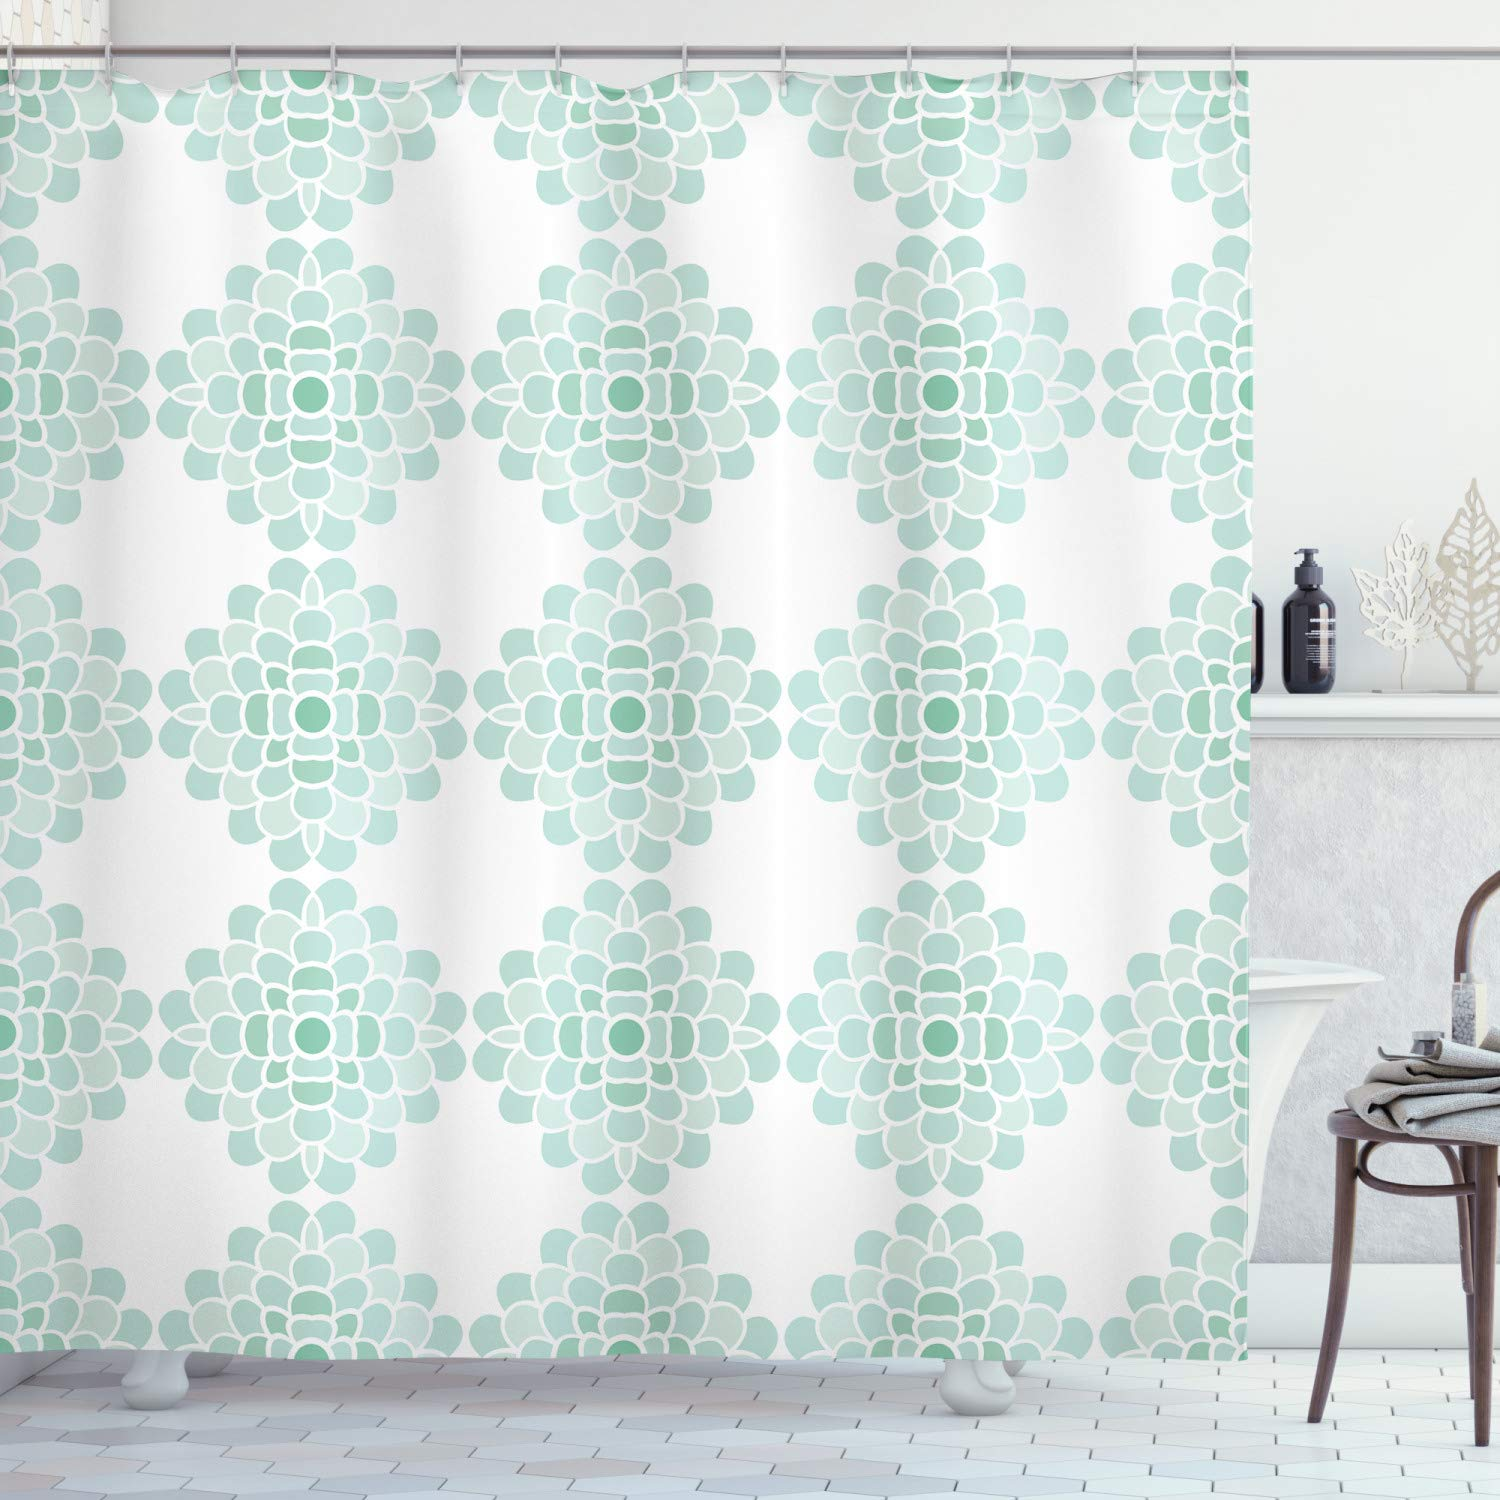 """Ambesonne Floral Shower Curtain, Abstract Horizontal Lines Geometric Bold Thin Stripes Ocean Themed Illustration, Cloth Fabric Bathroom Decor Set with Hooks, 84"""" Long Extra, Seafoam White"""